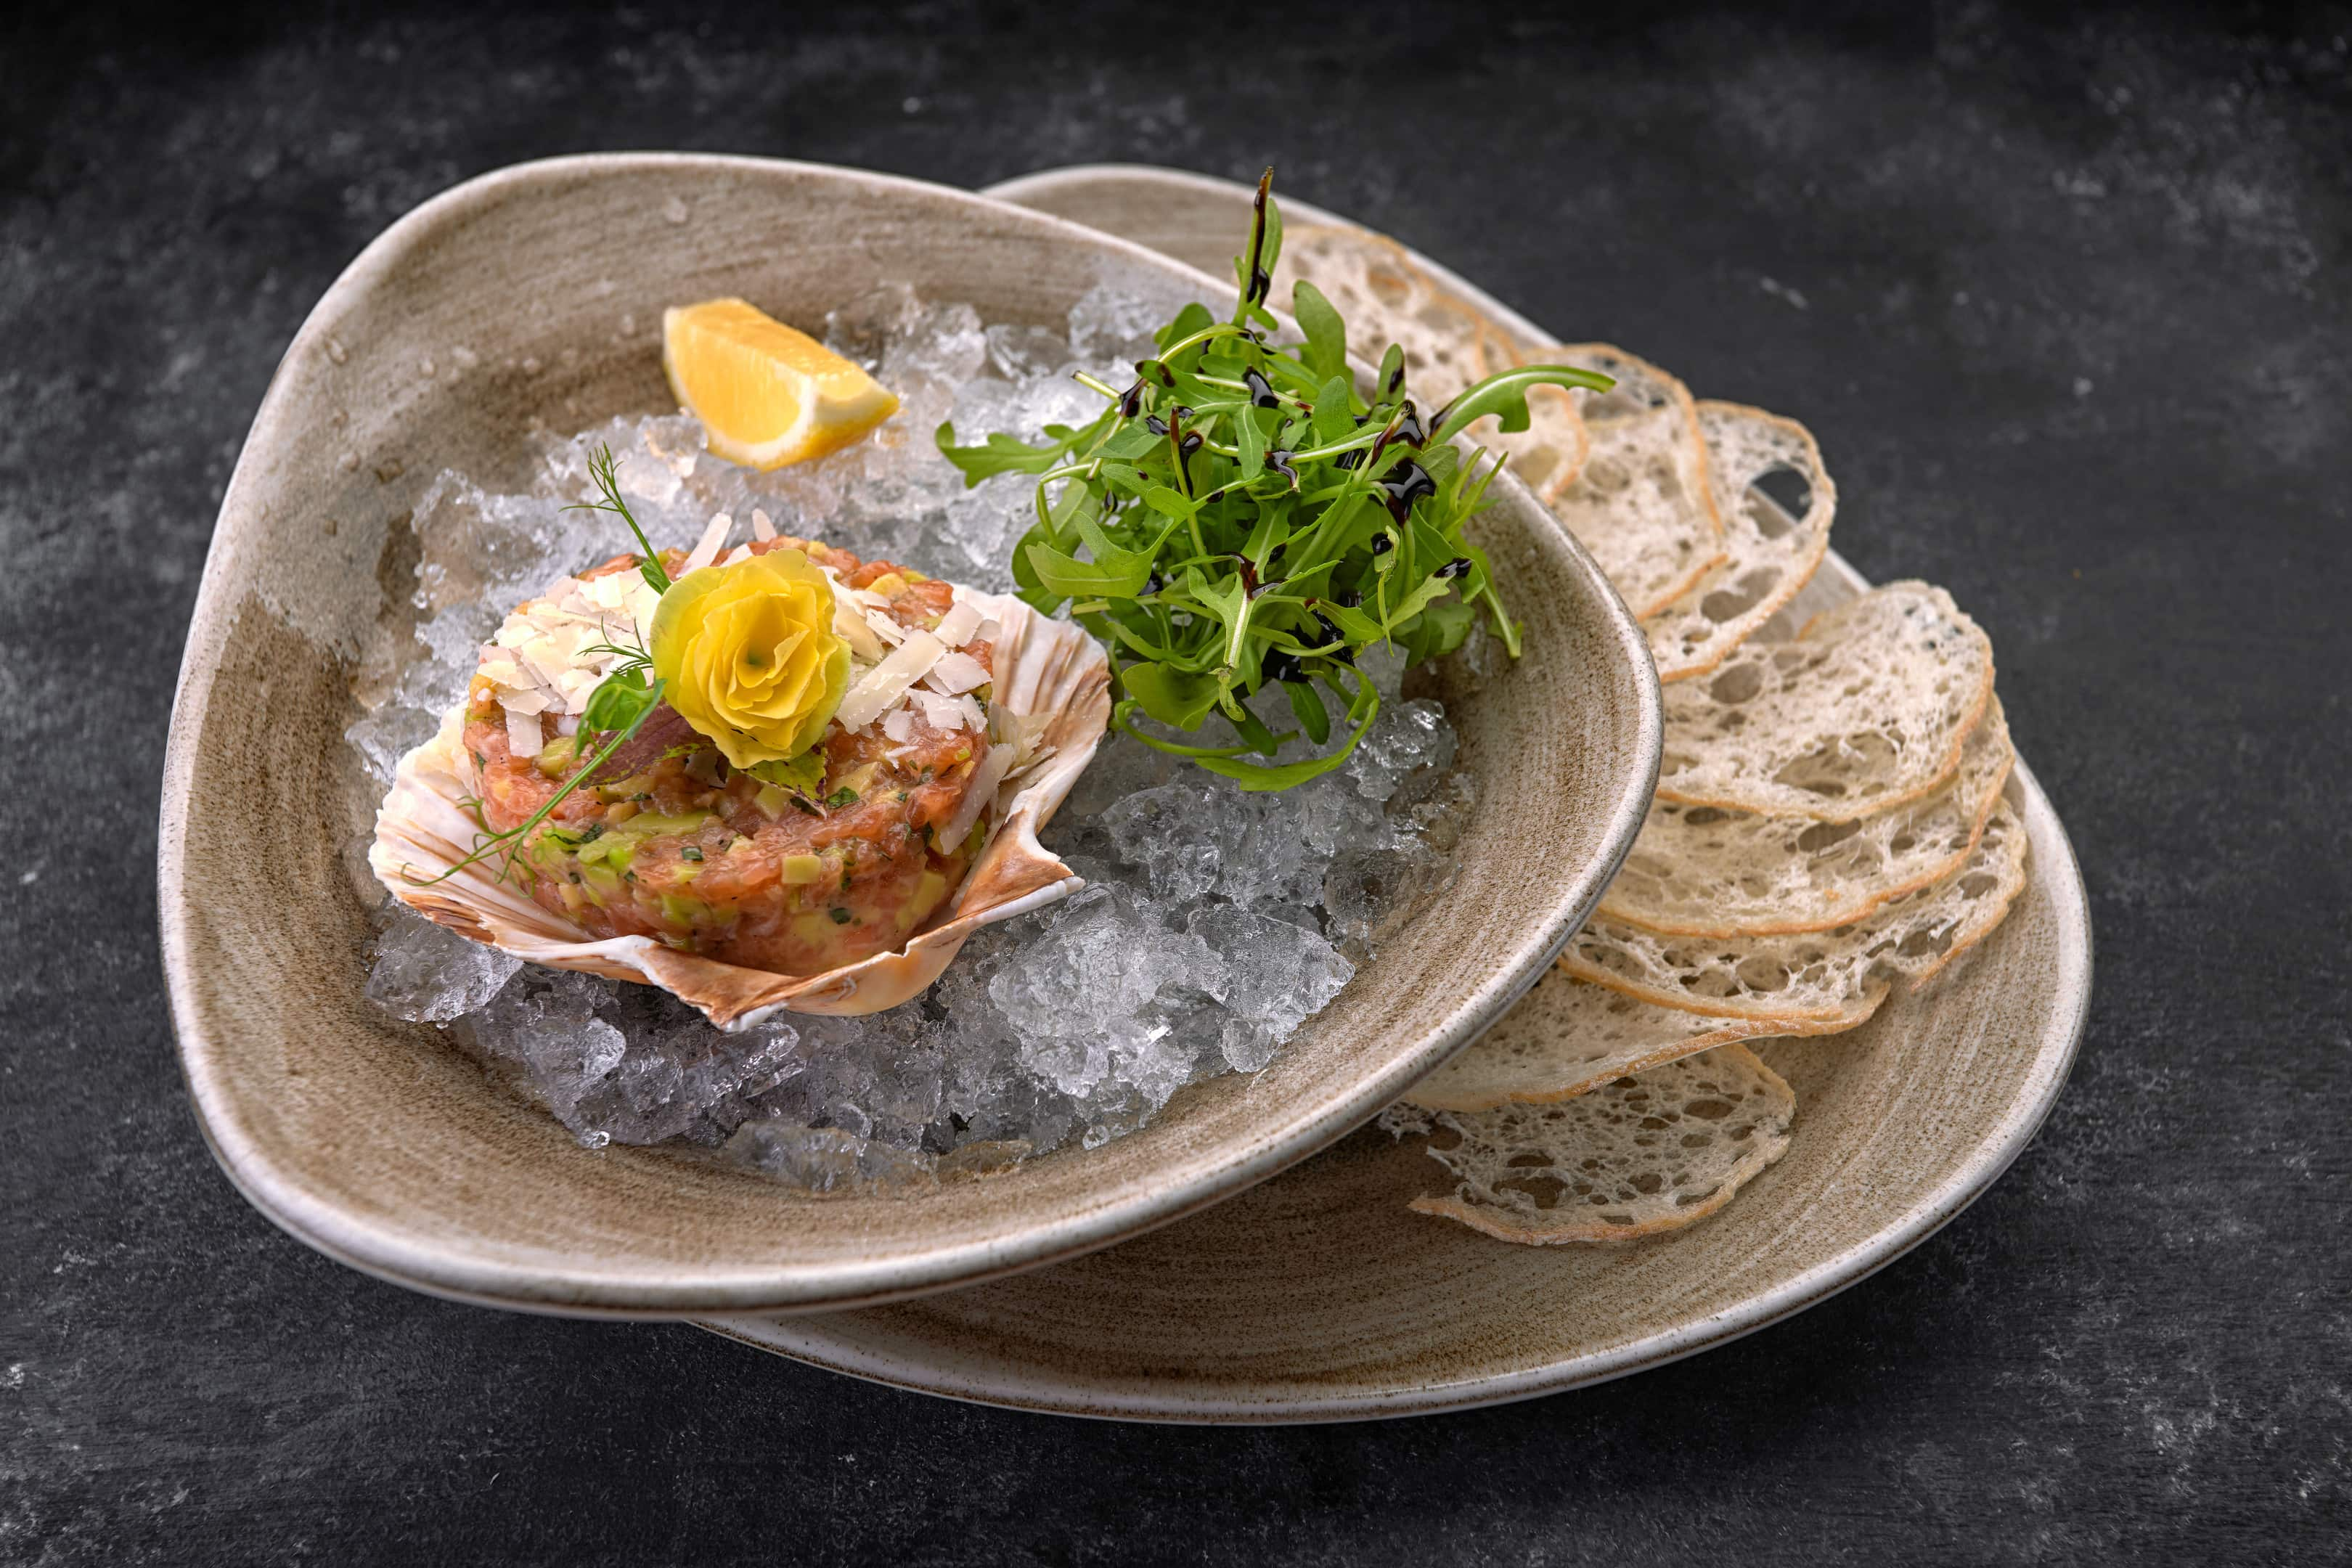 Salmon tartare with oysters, avocado, bread chips and lemon